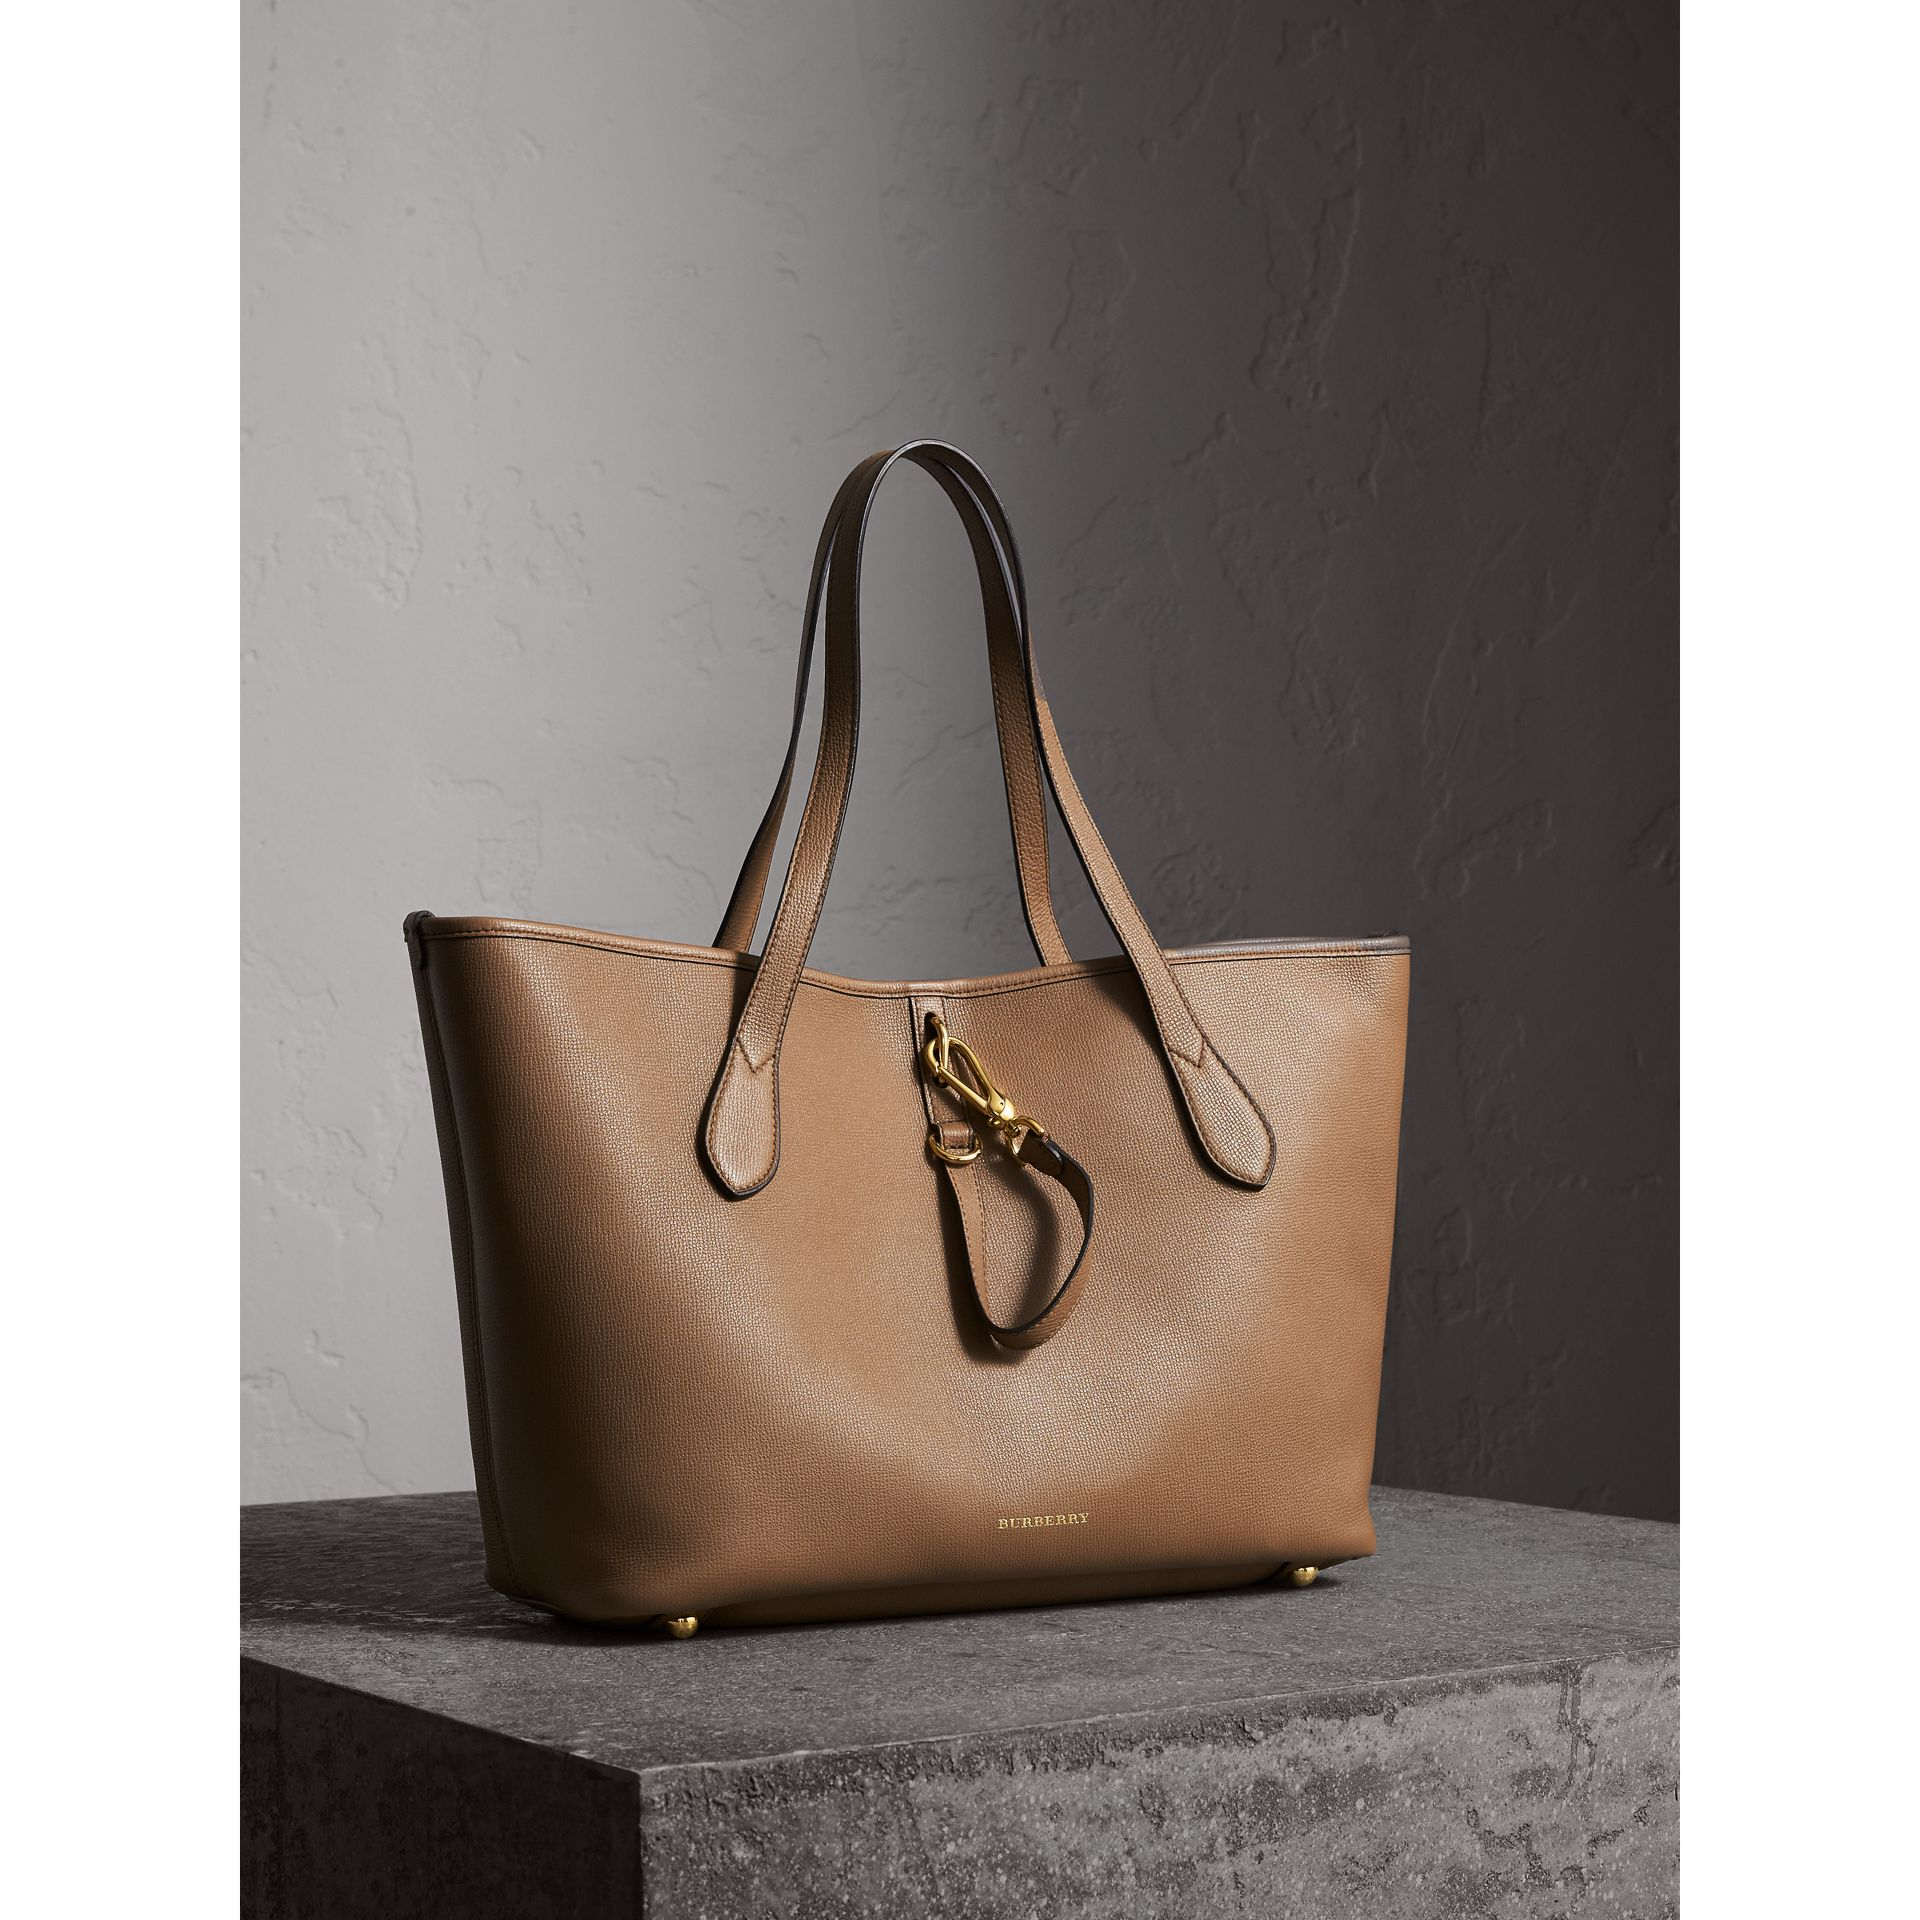 Medium Grainy Leather Tote Bag in Dark Sand - Women | Burberry - gallery image 7